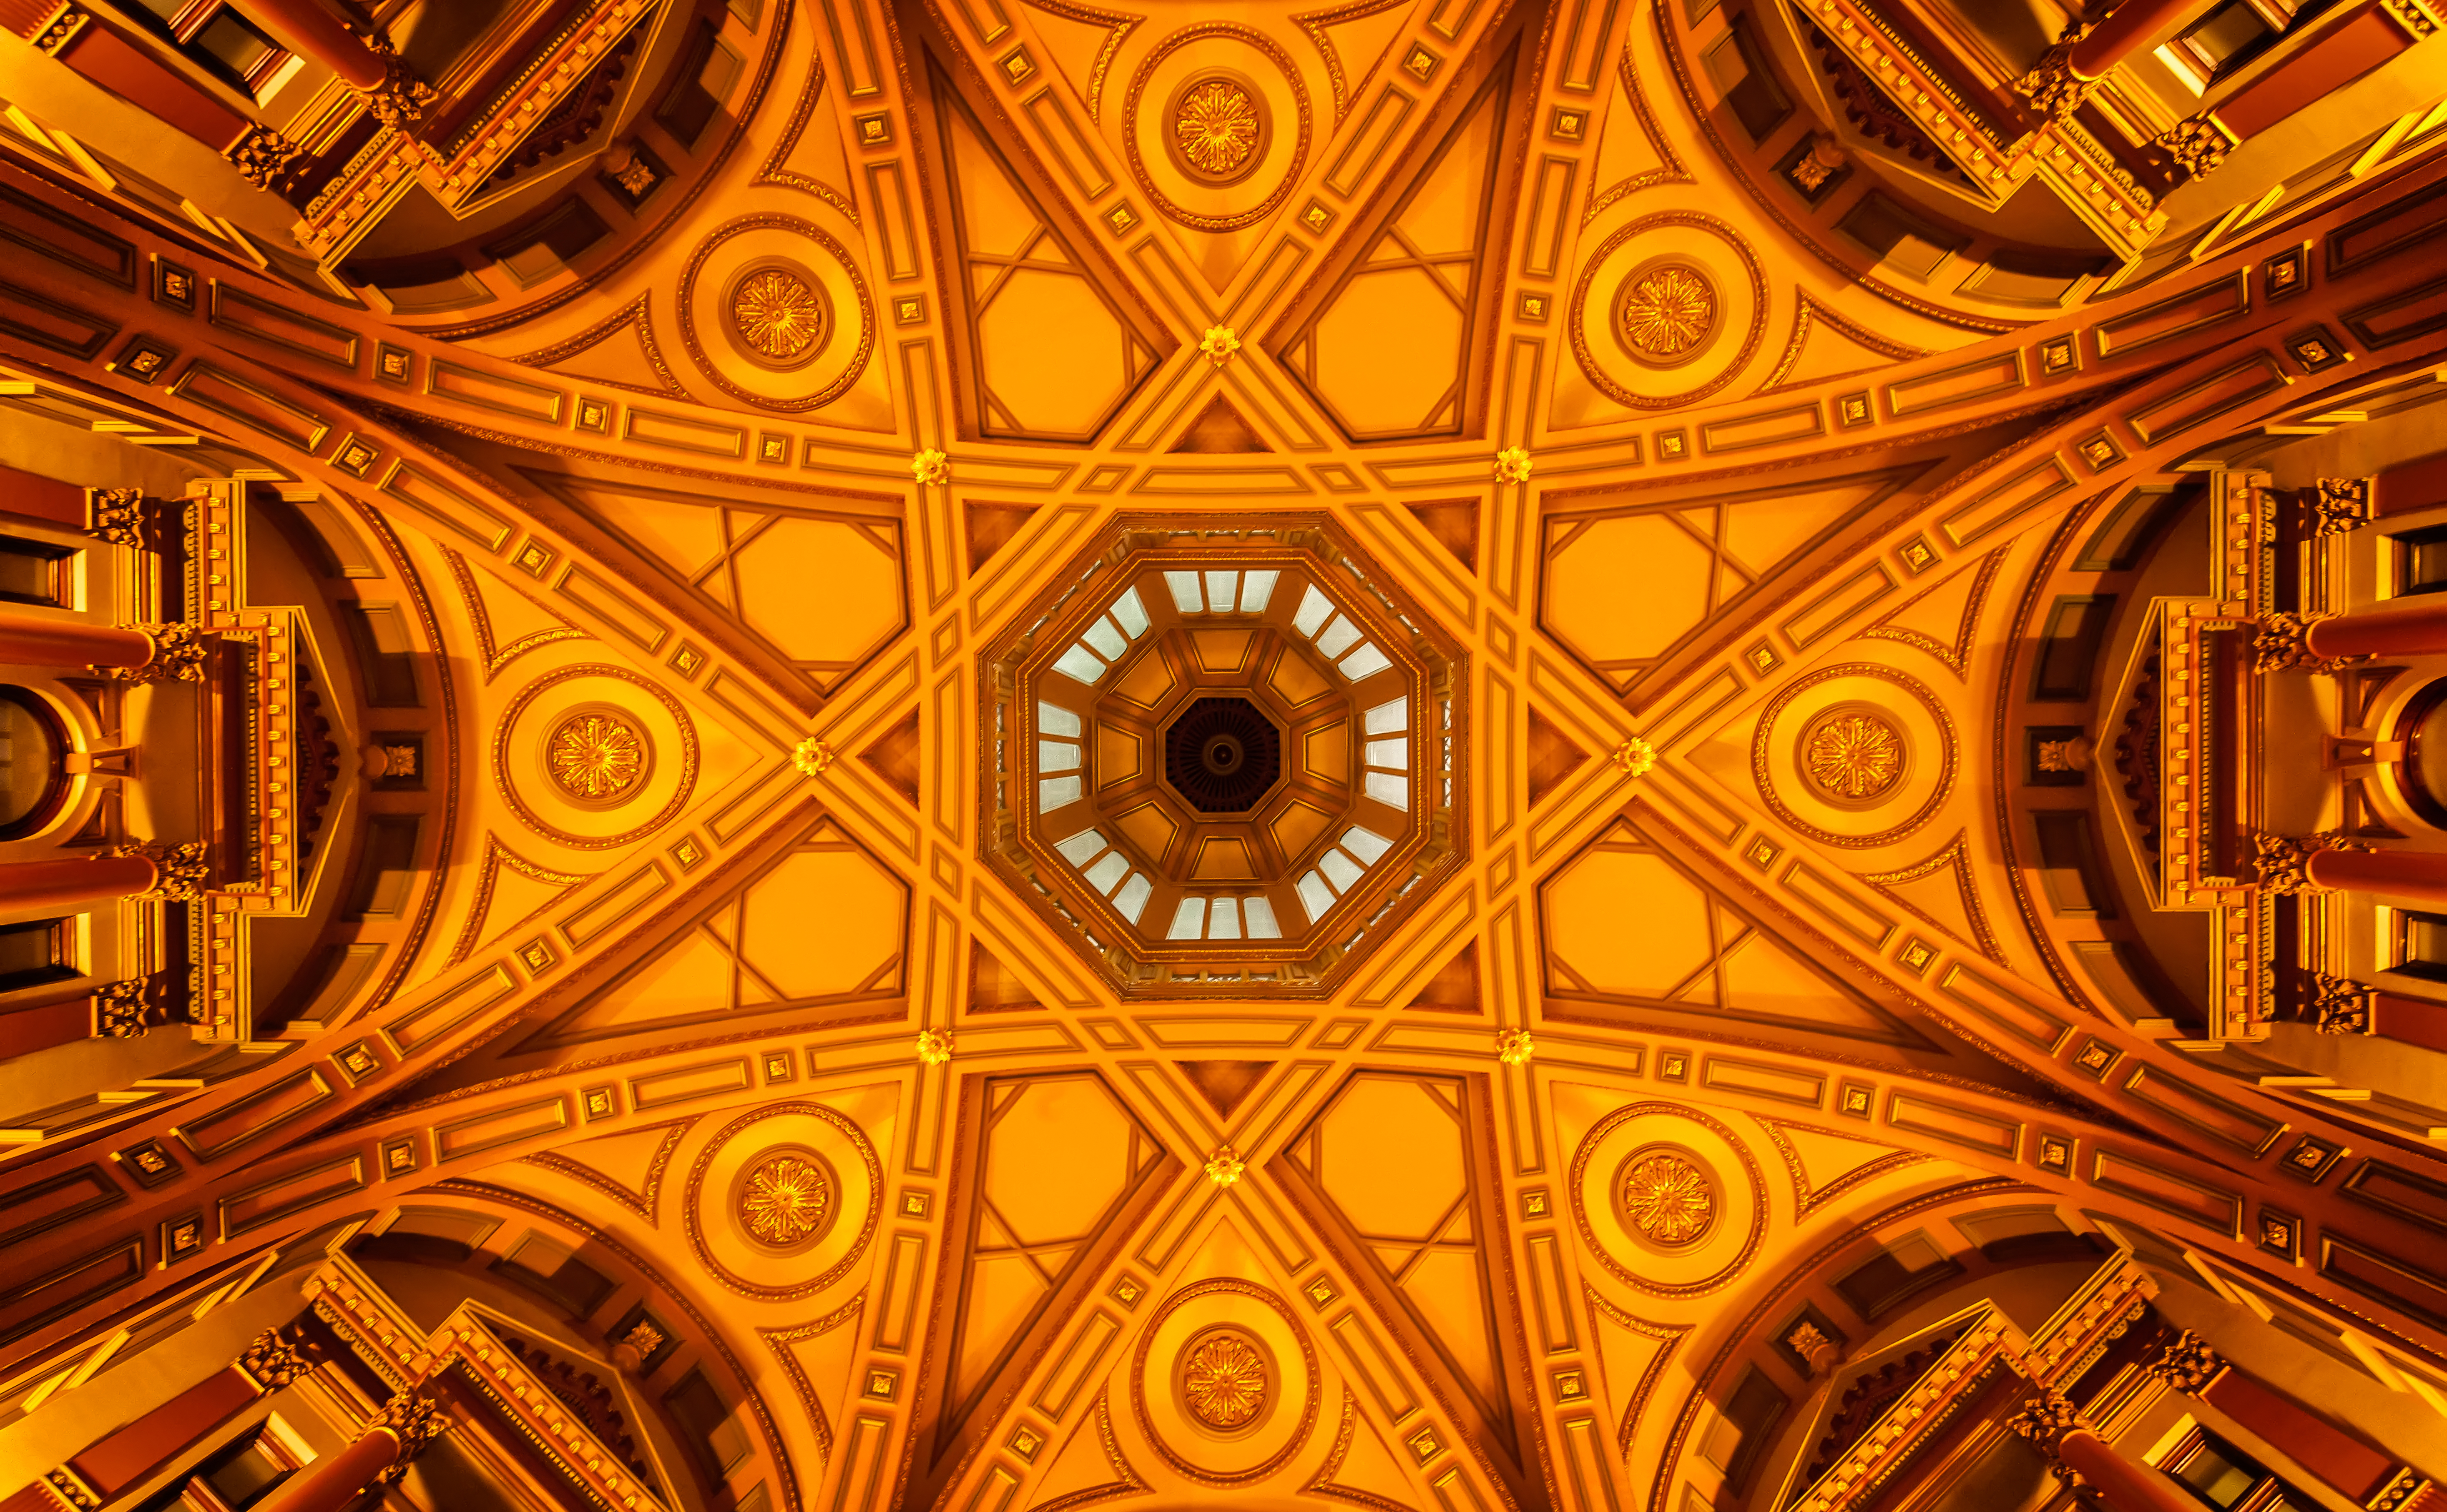 The Ceiling of the Dome of 333 Collins Street